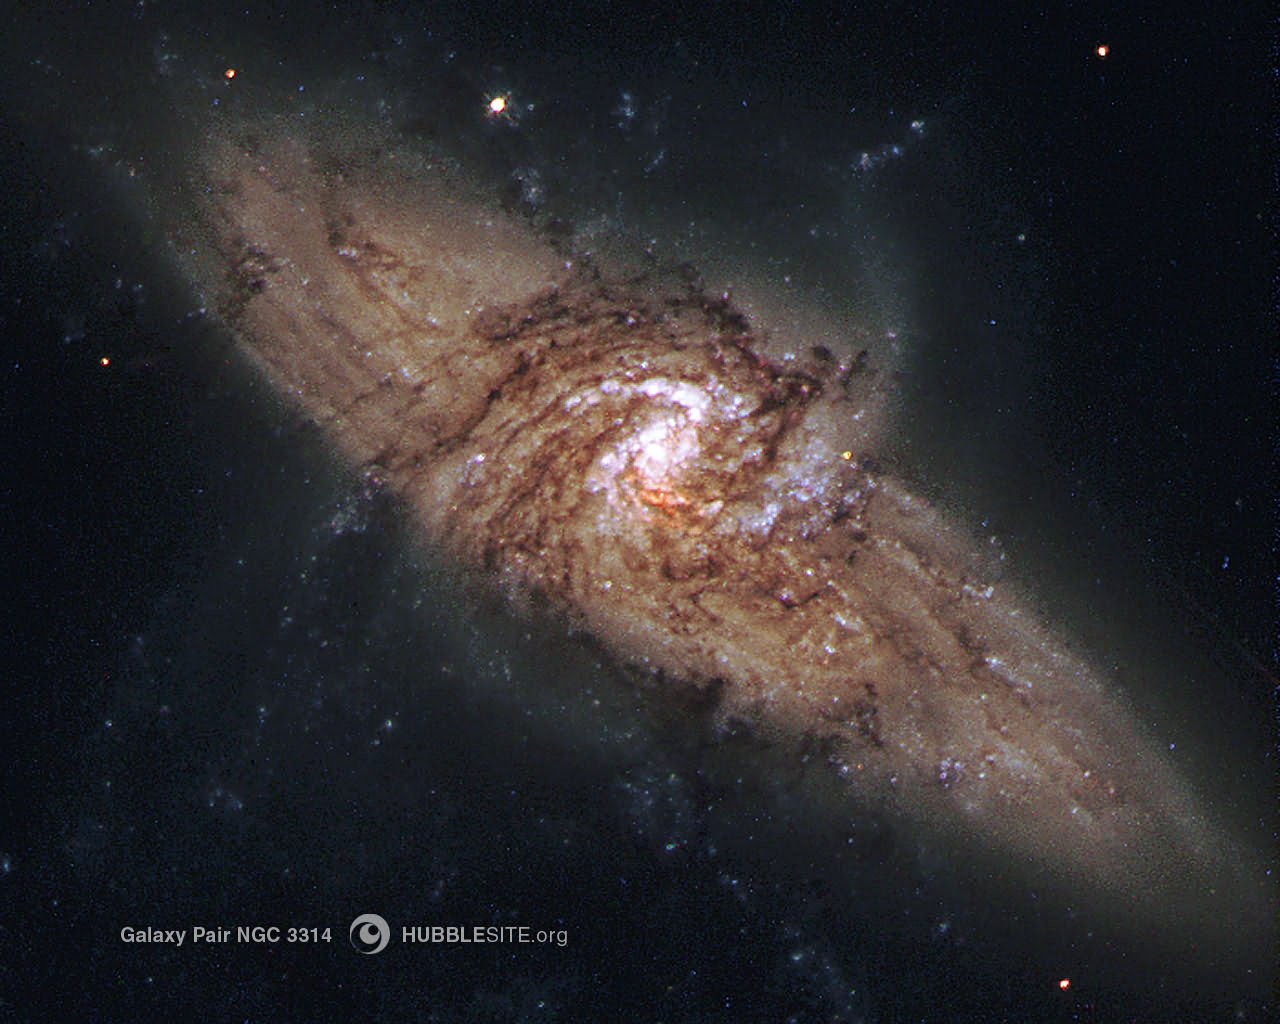 Desktop wallpaper for Galaxy Pair HUBBLE 1280x1024